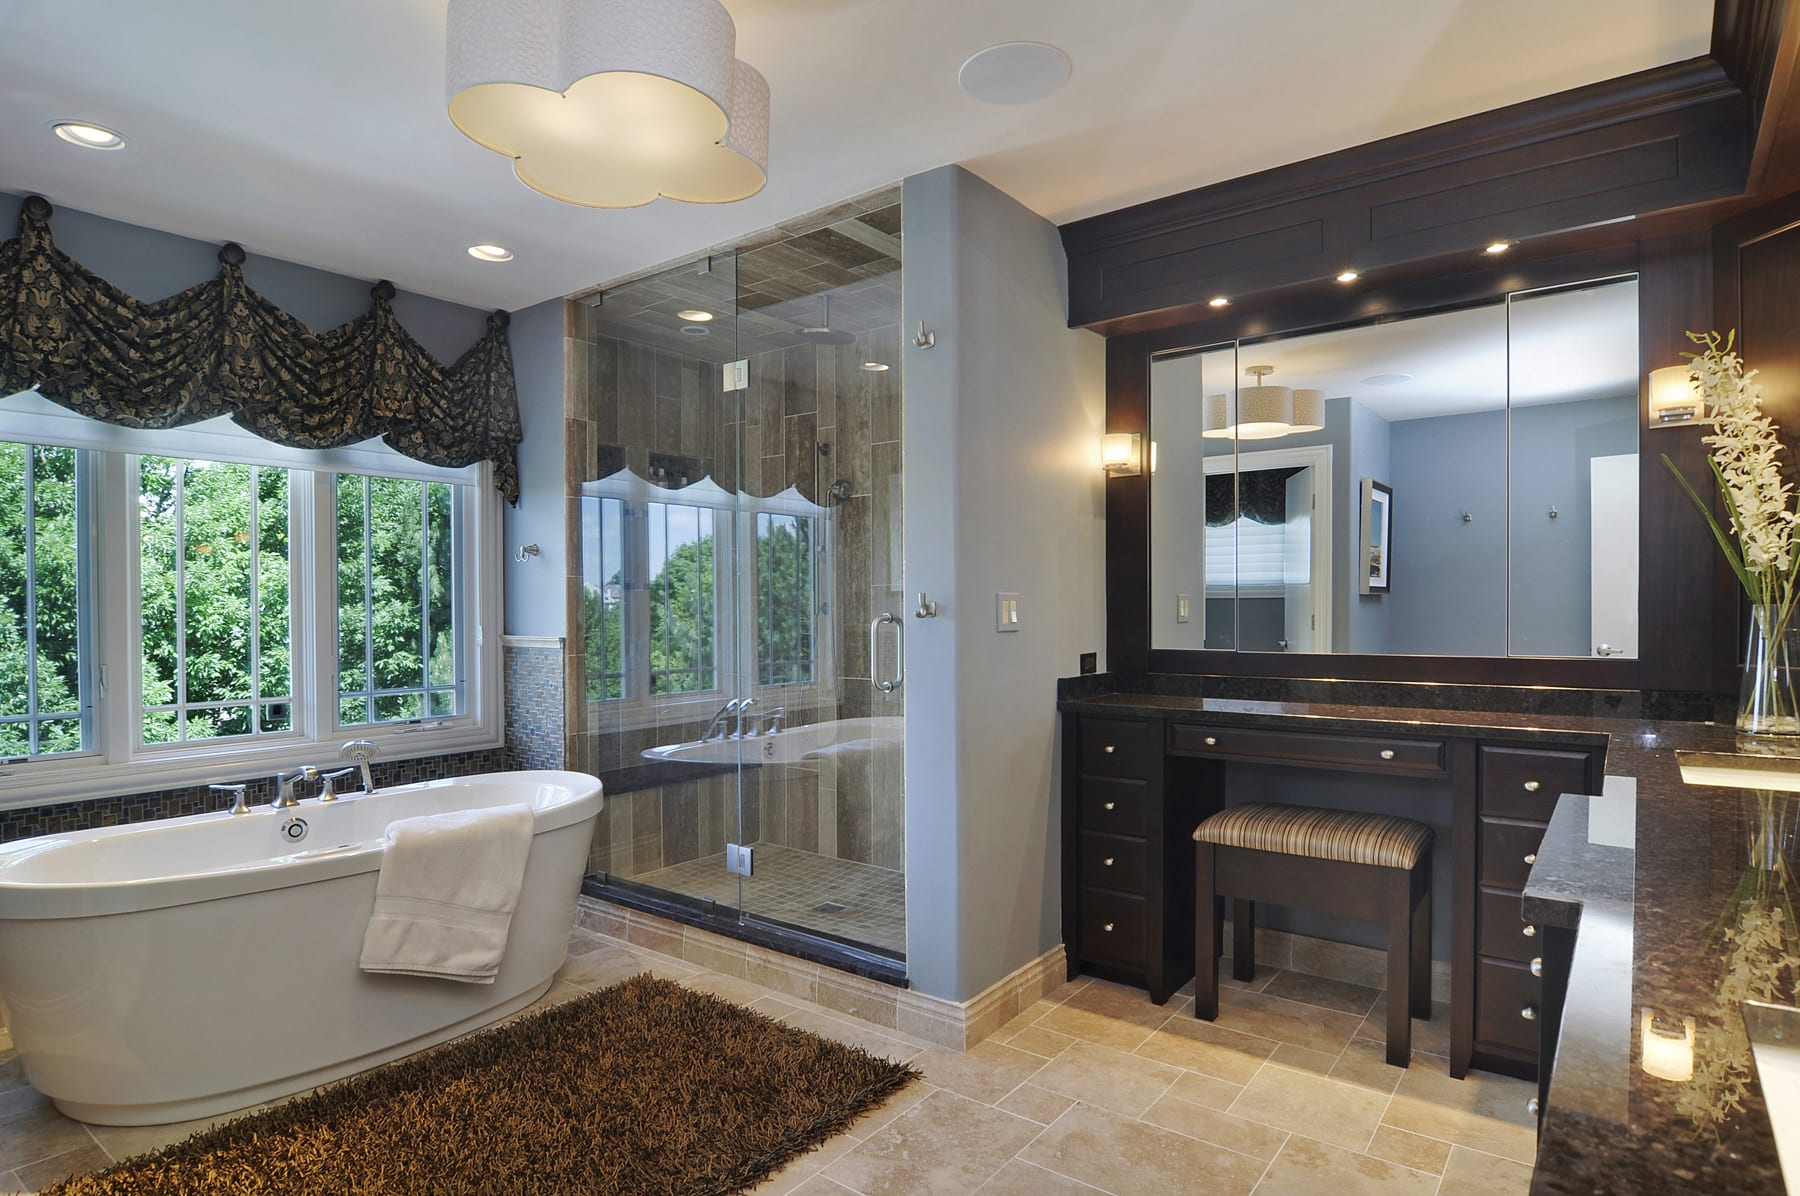 Bathroom Remodeling Crystal Lake Il Best Hot Tub Repair - Bathroom remodeling crystal lake il